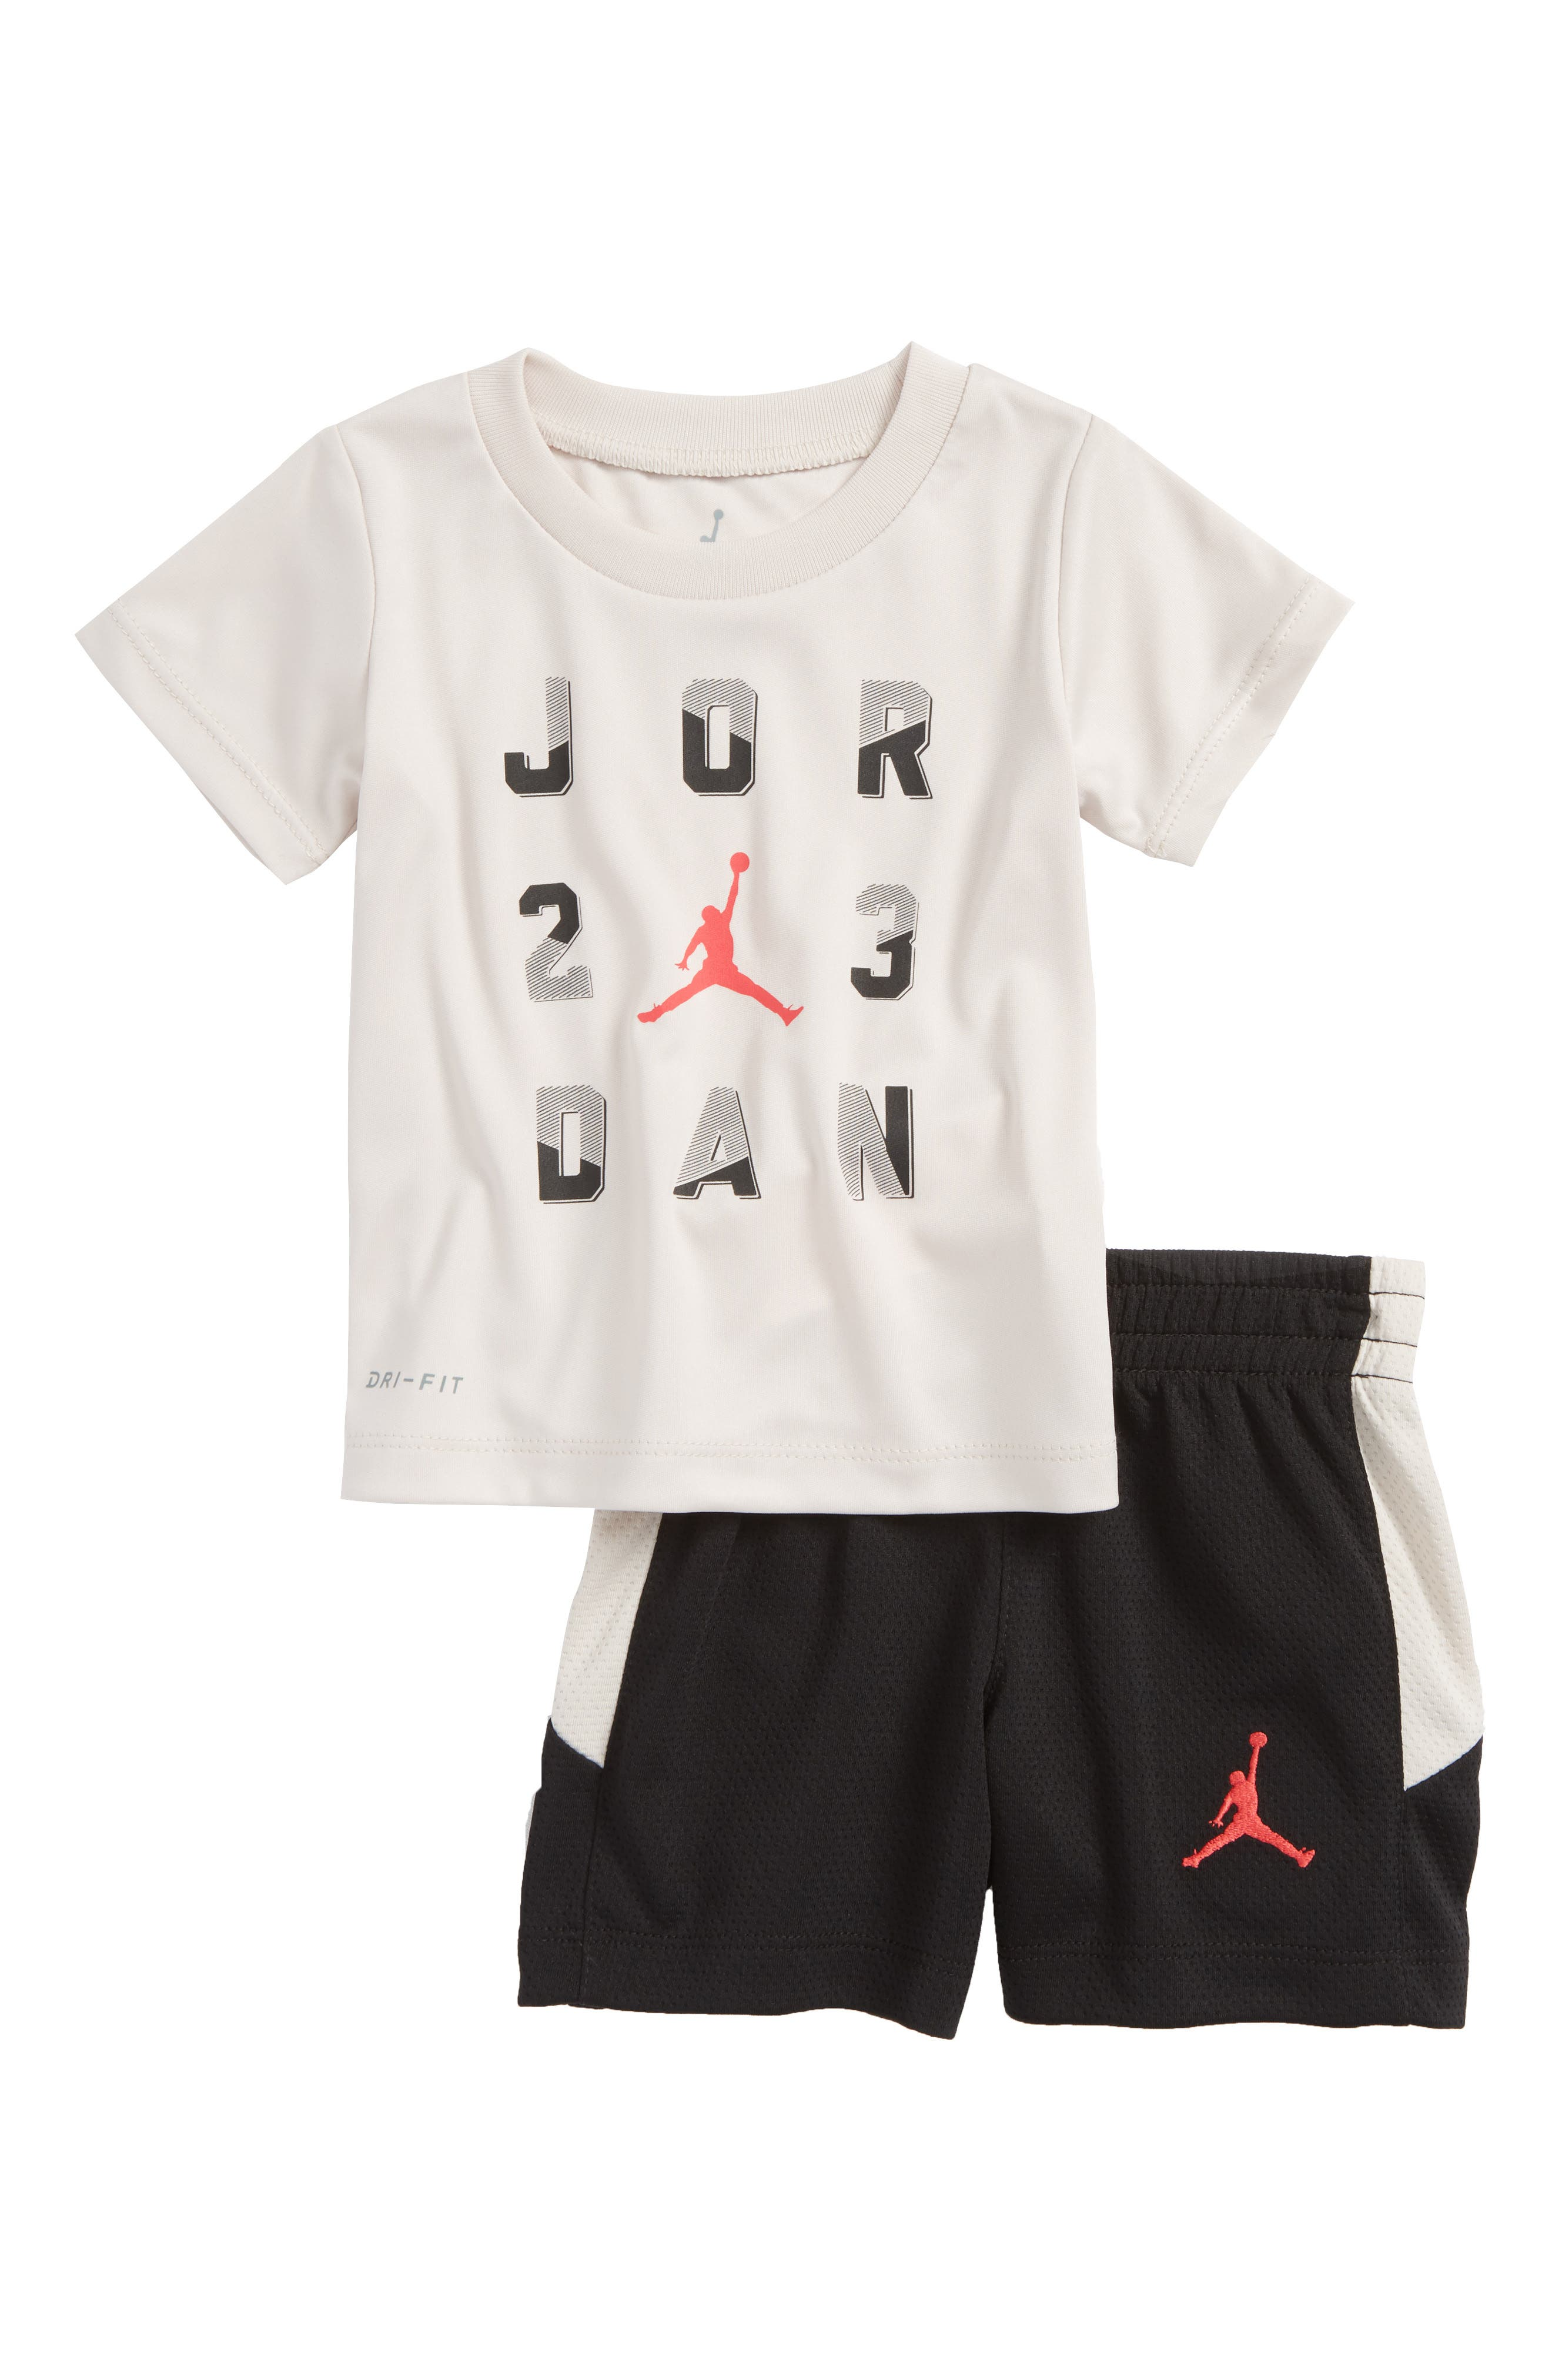 23 T-Shirt & Shorts Set,                             Main thumbnail 1, color,                             004